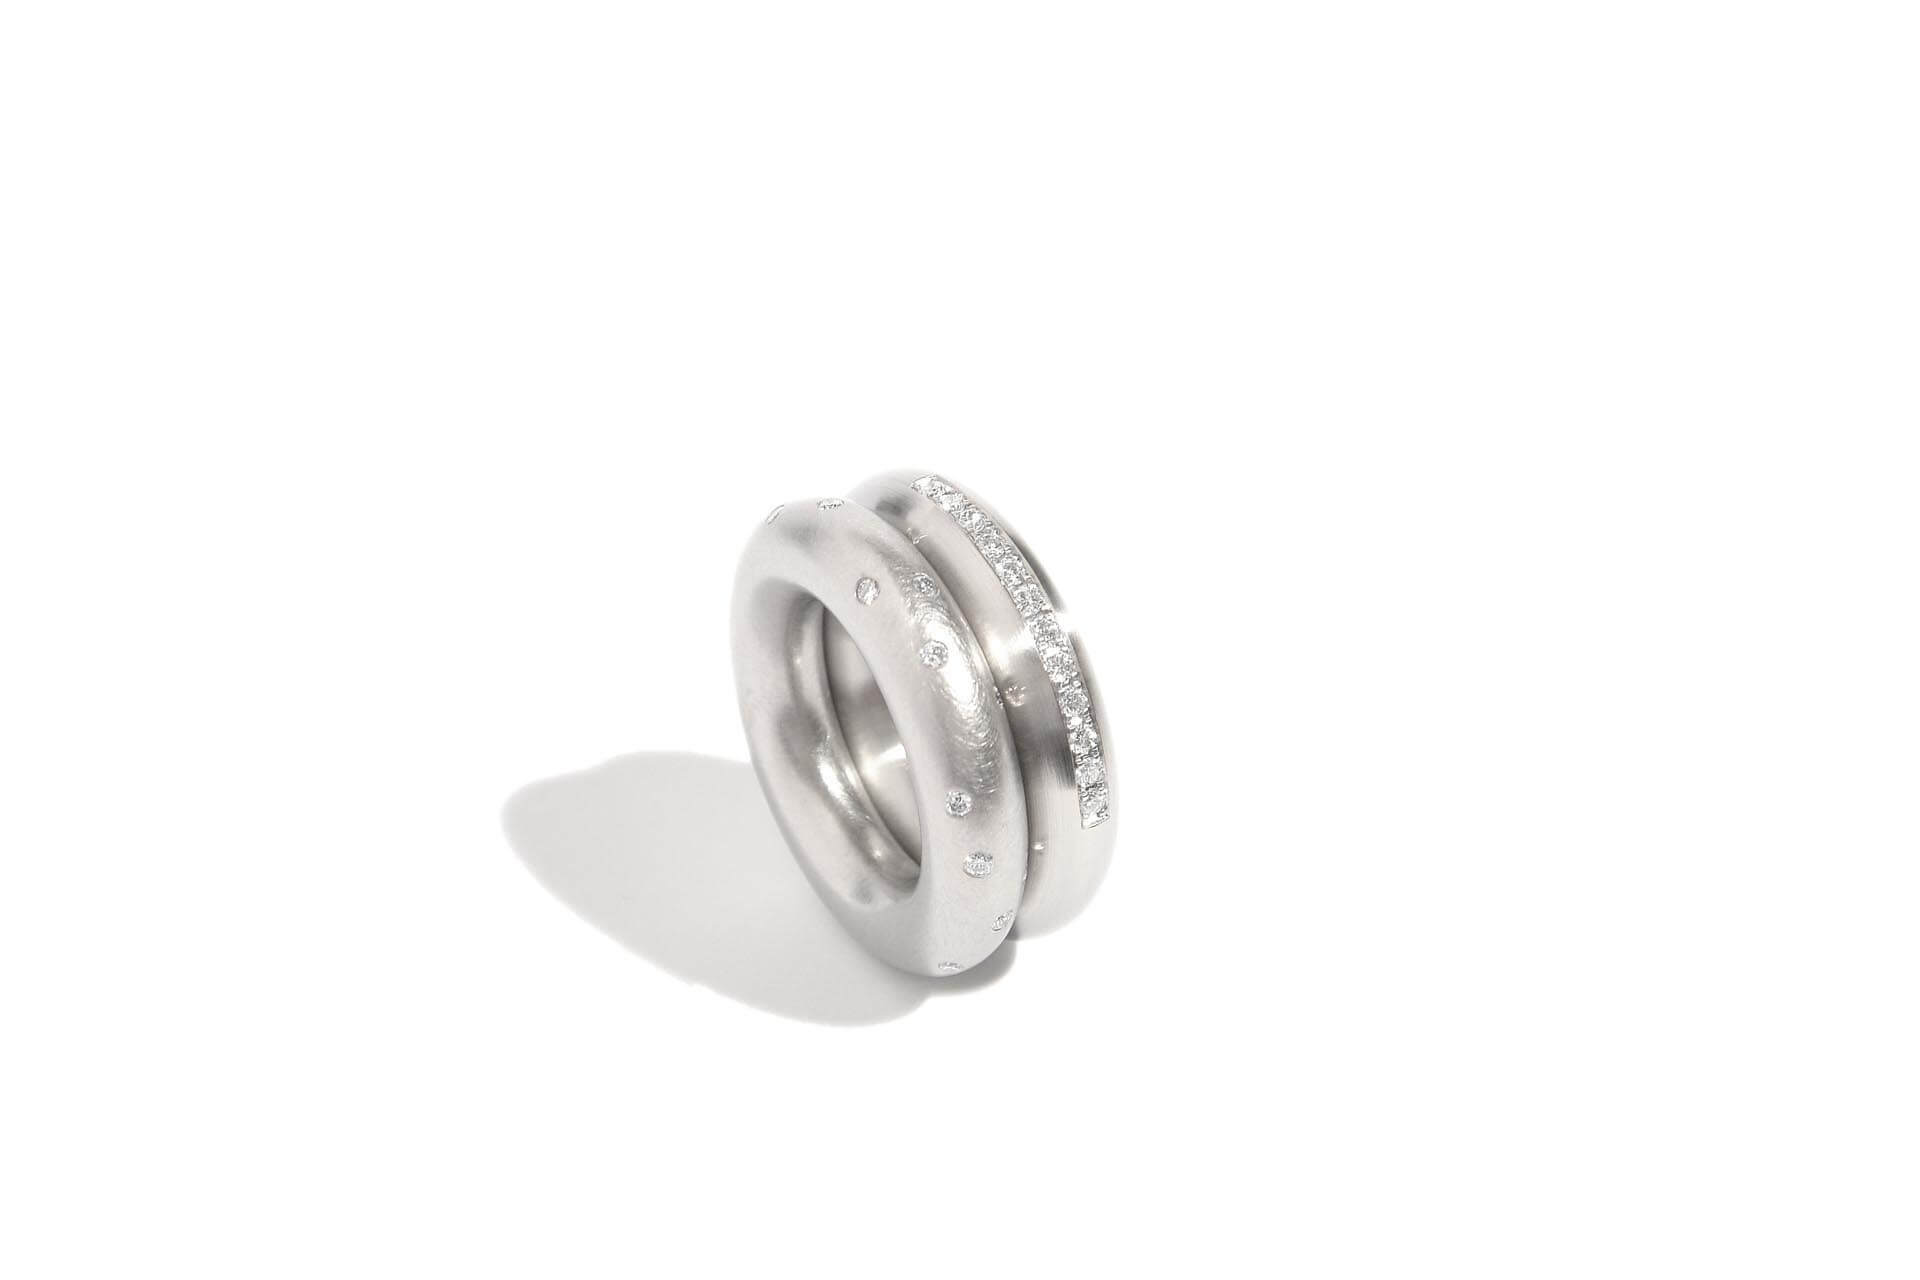 Two bullet round stainless steel rings with diamonds, 6mm wide